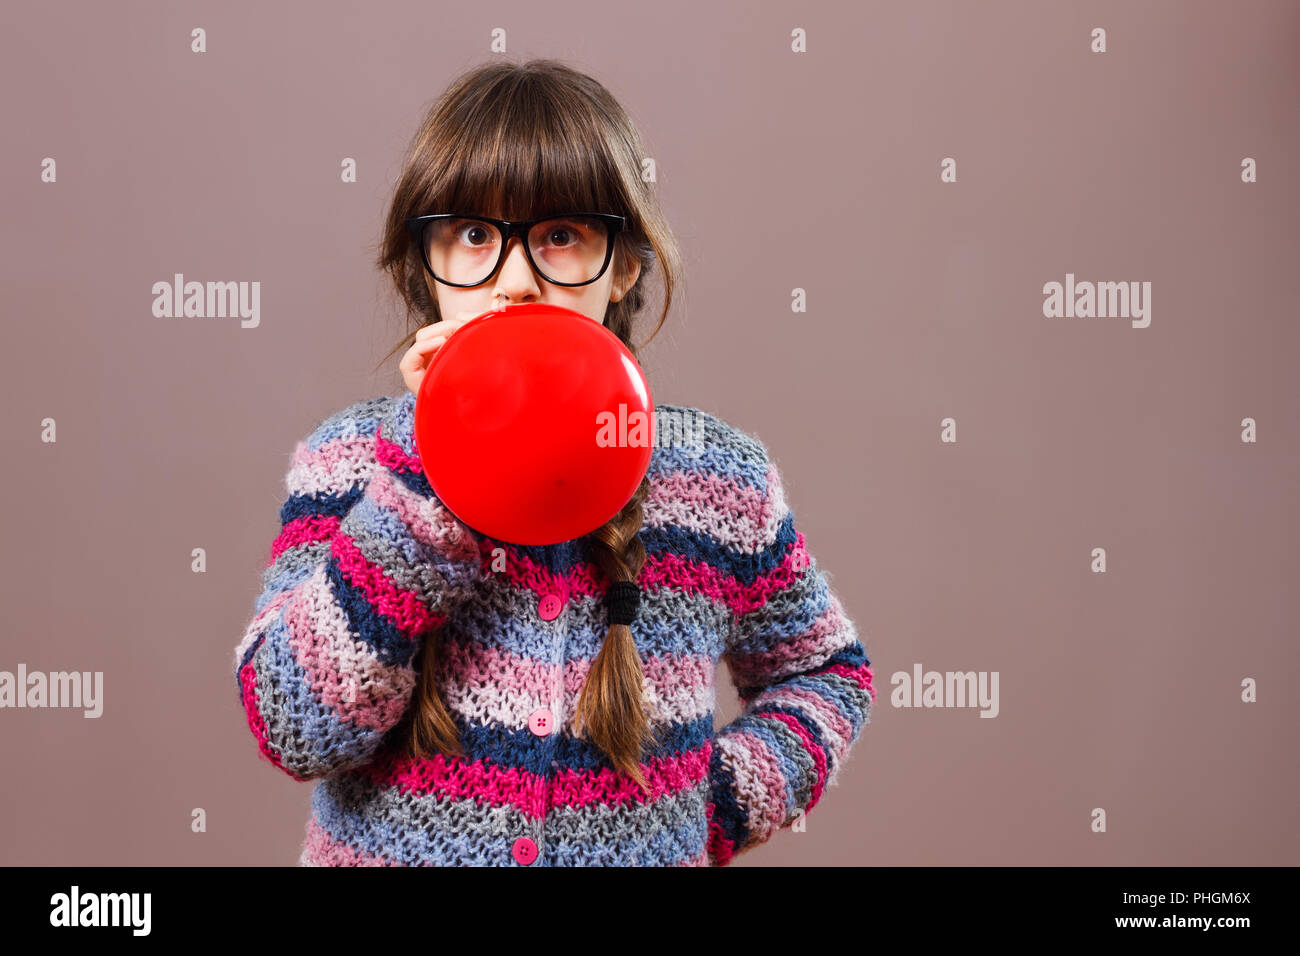 Little nerdy girl blowing balloon - Stock Image